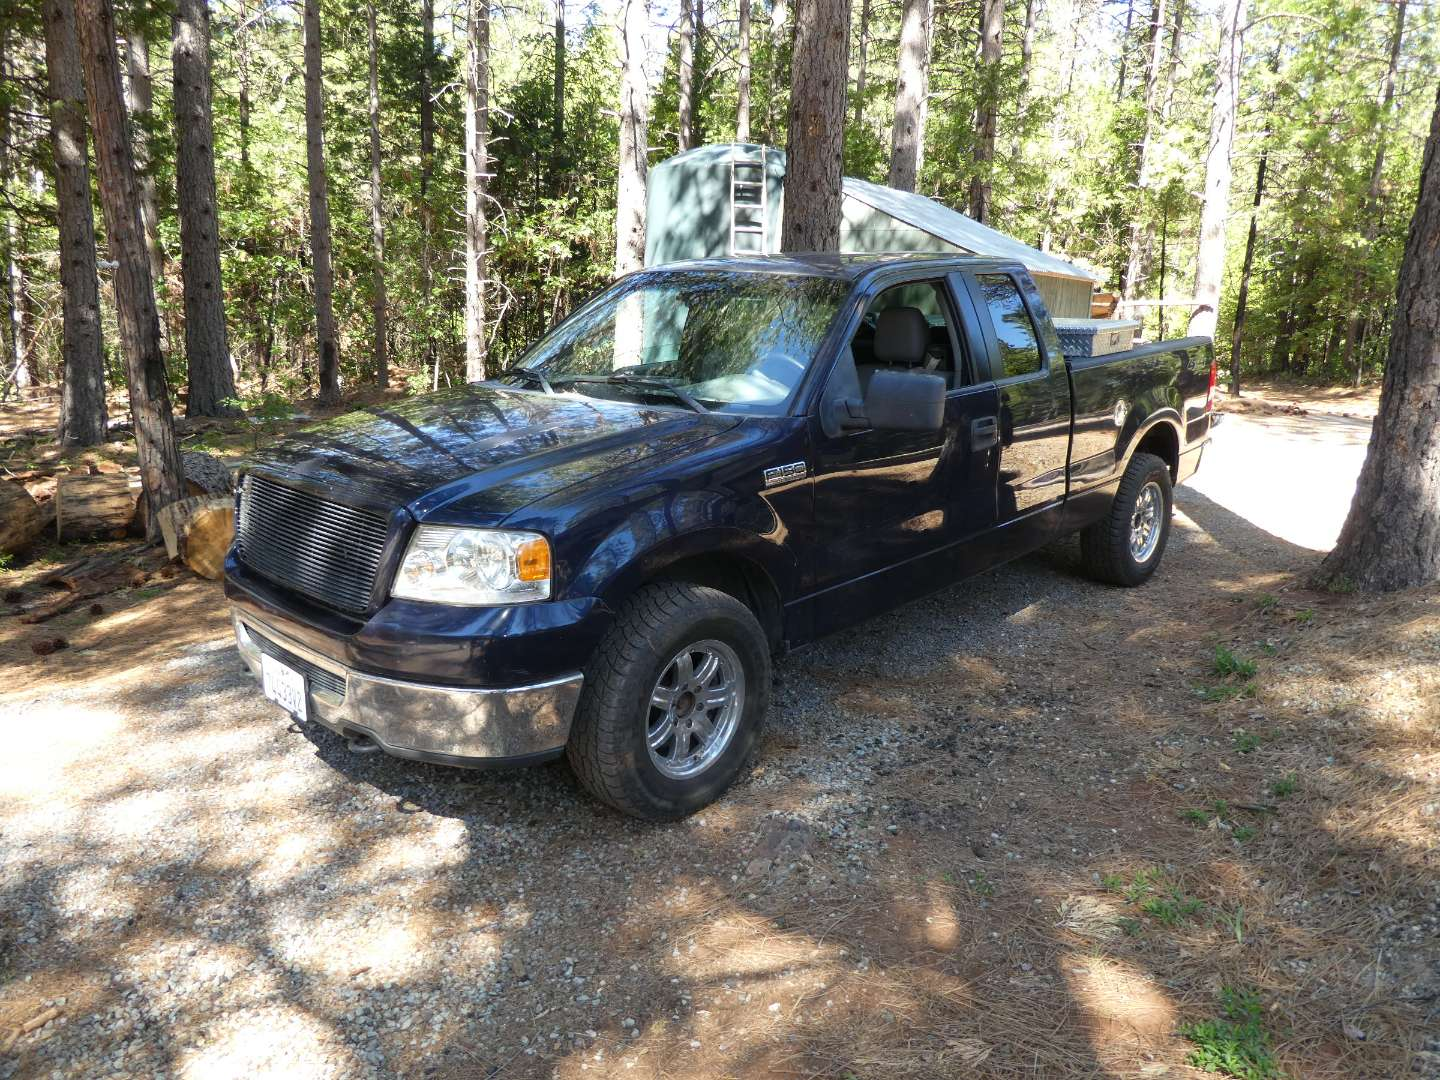 Lot # 401 - 2006 Ford F-150 Extended Cab - Smogged & Registered